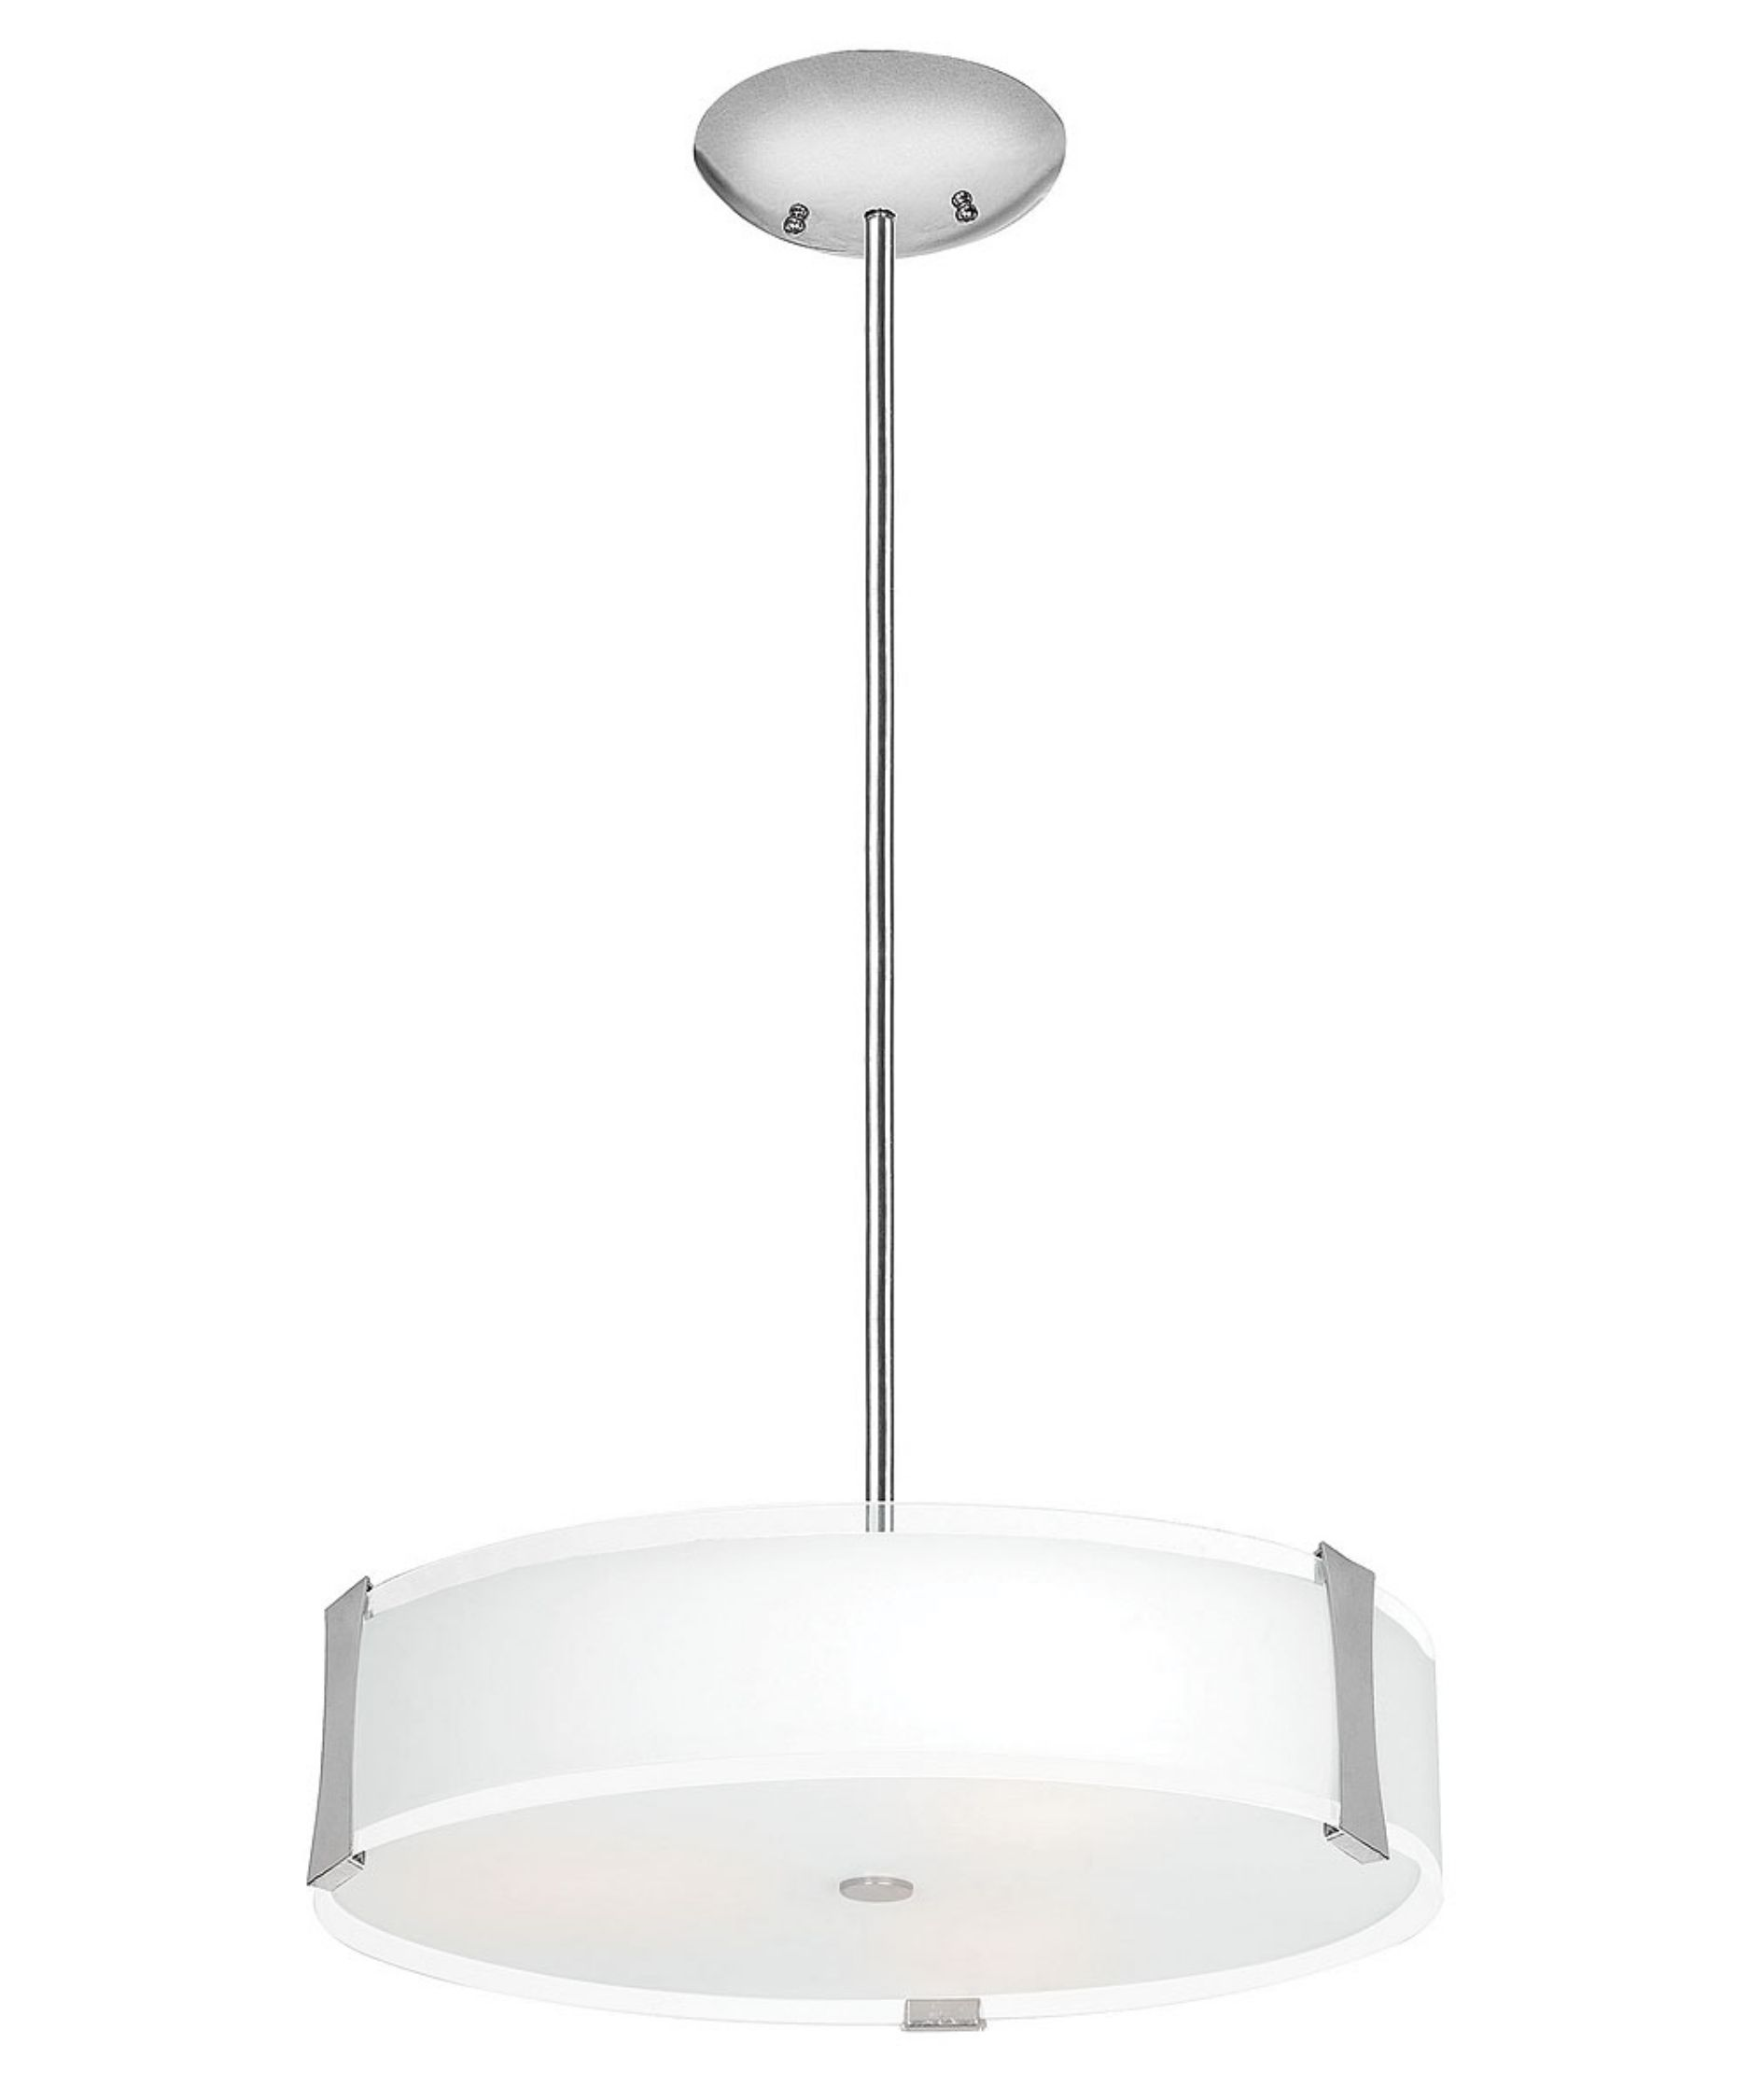 Tara pendant by access lighting click the image to learn more access lighting tara 18 inch wide 3 light large pendant aloadofball Images